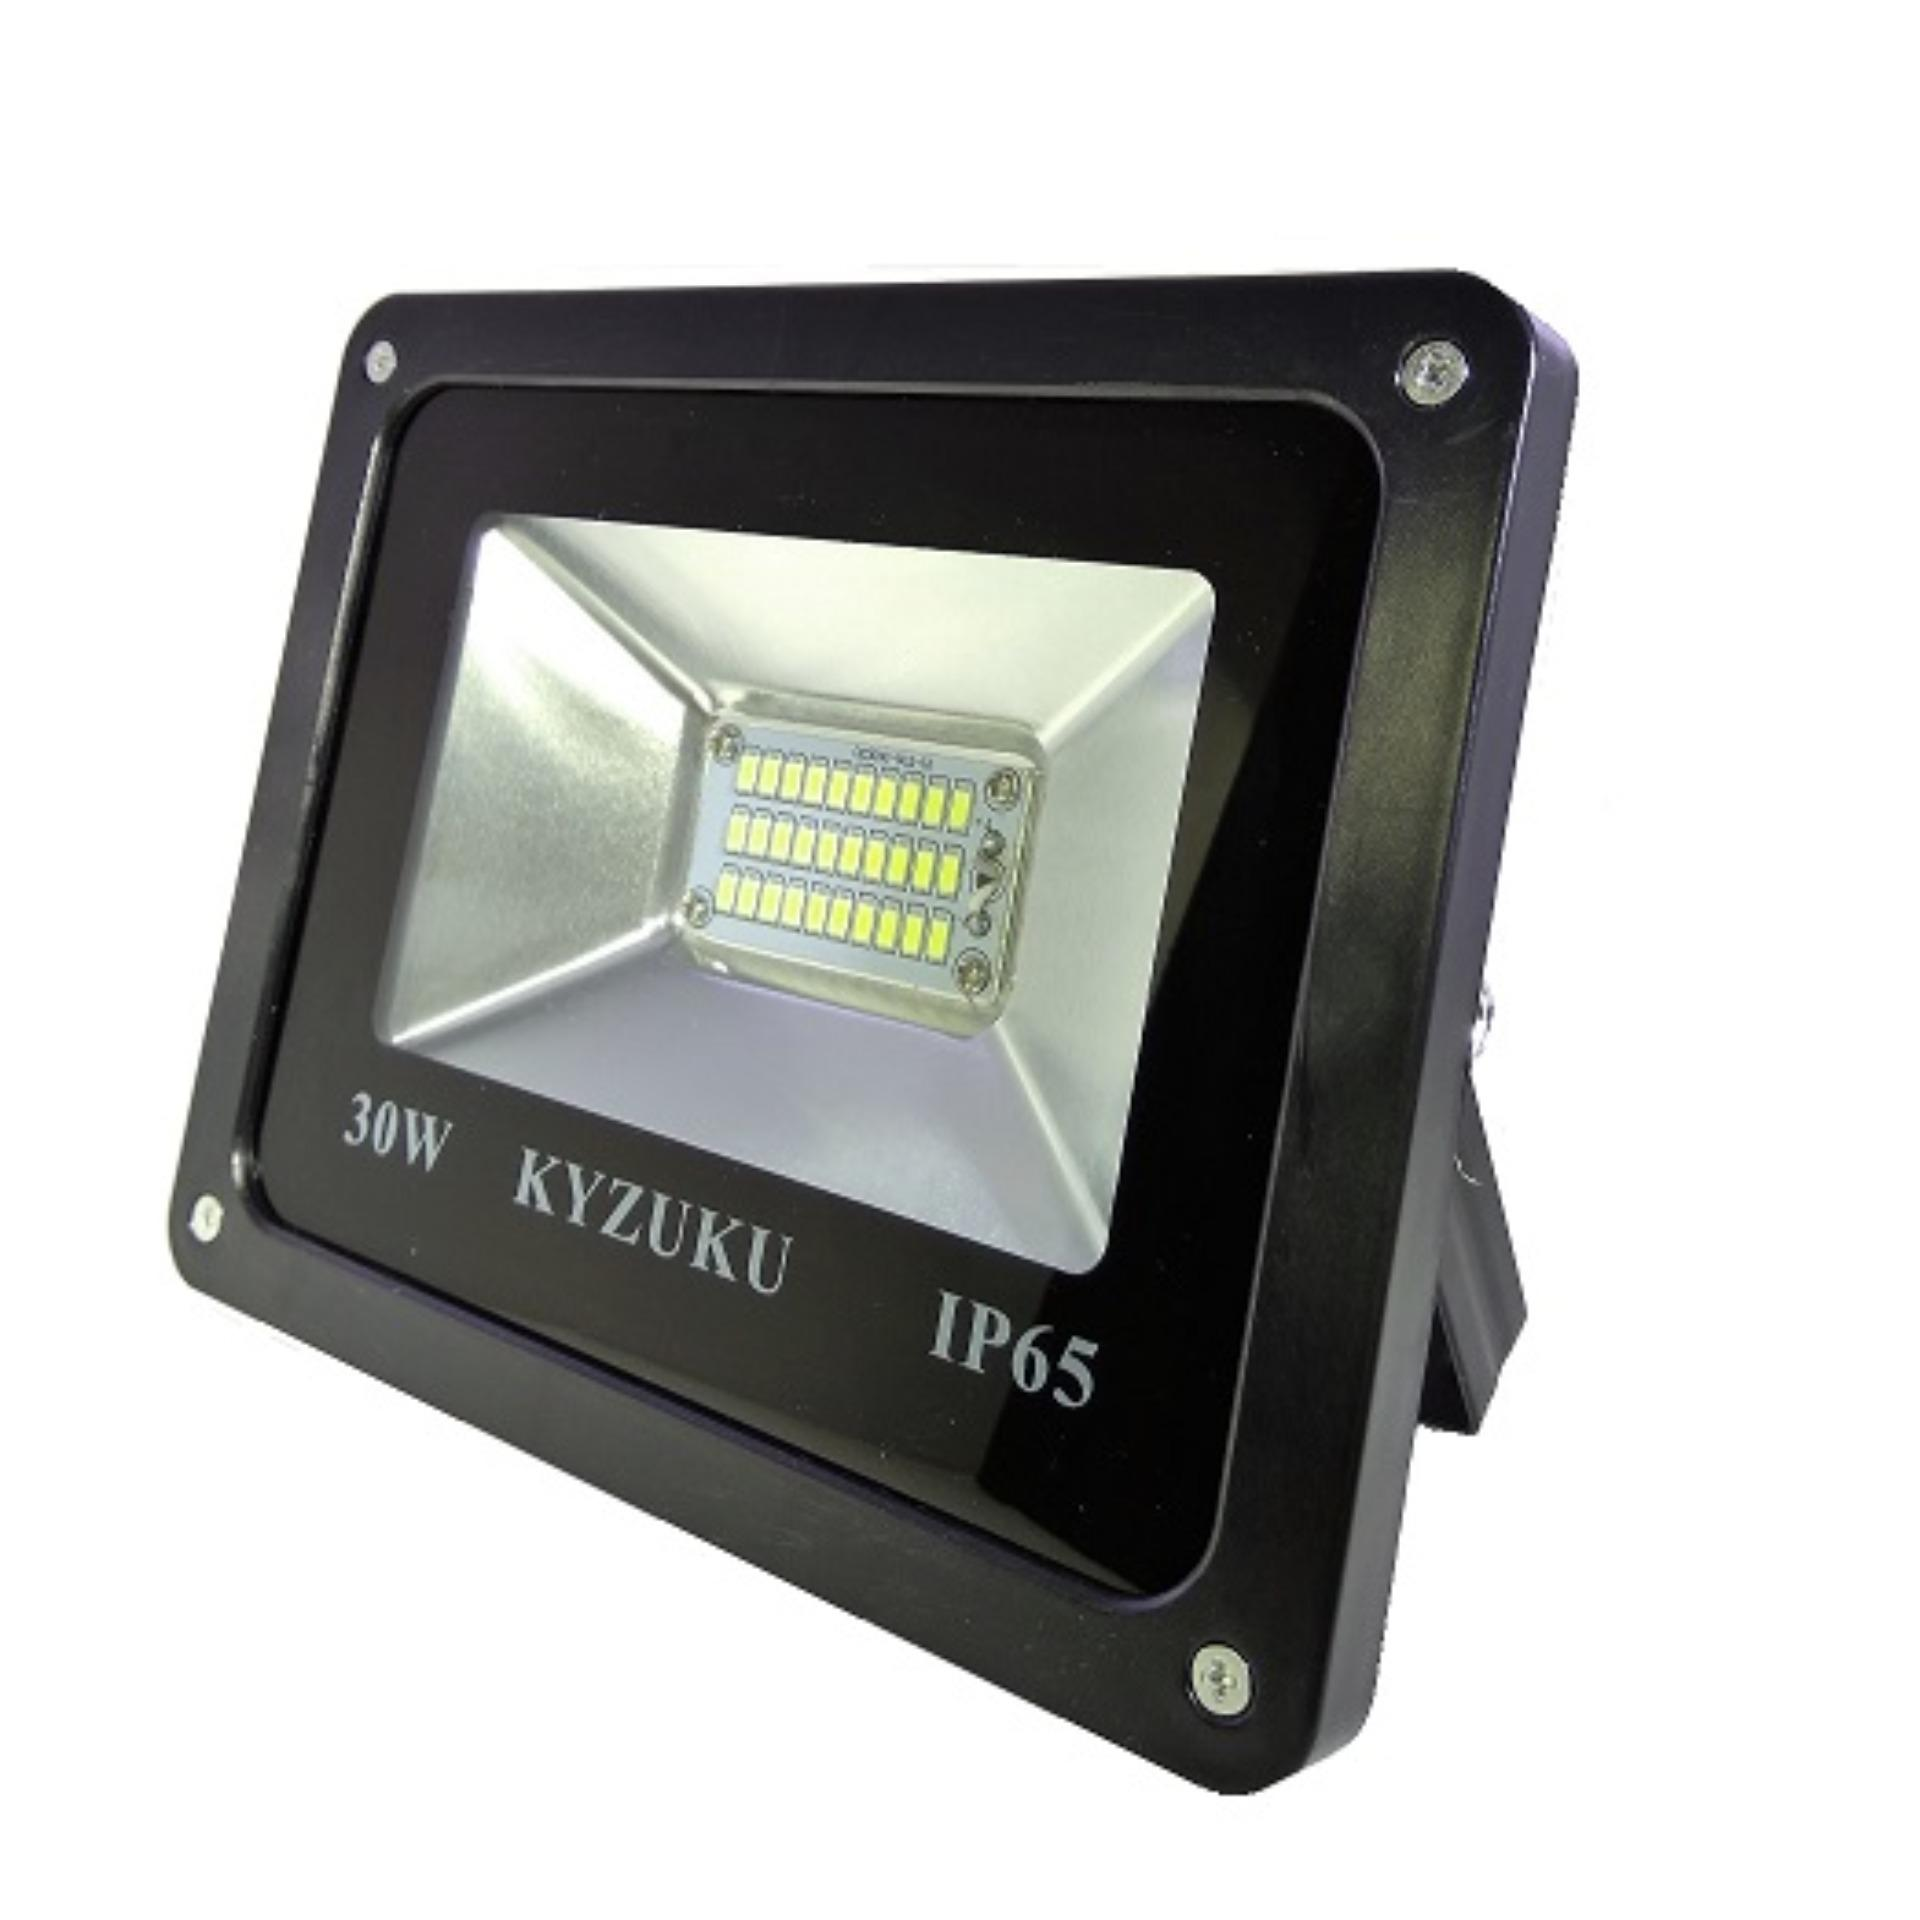 Harga Kyzuku Led Outdoor Light Lampu Sorot 30 Watt Ip65 Terbaik